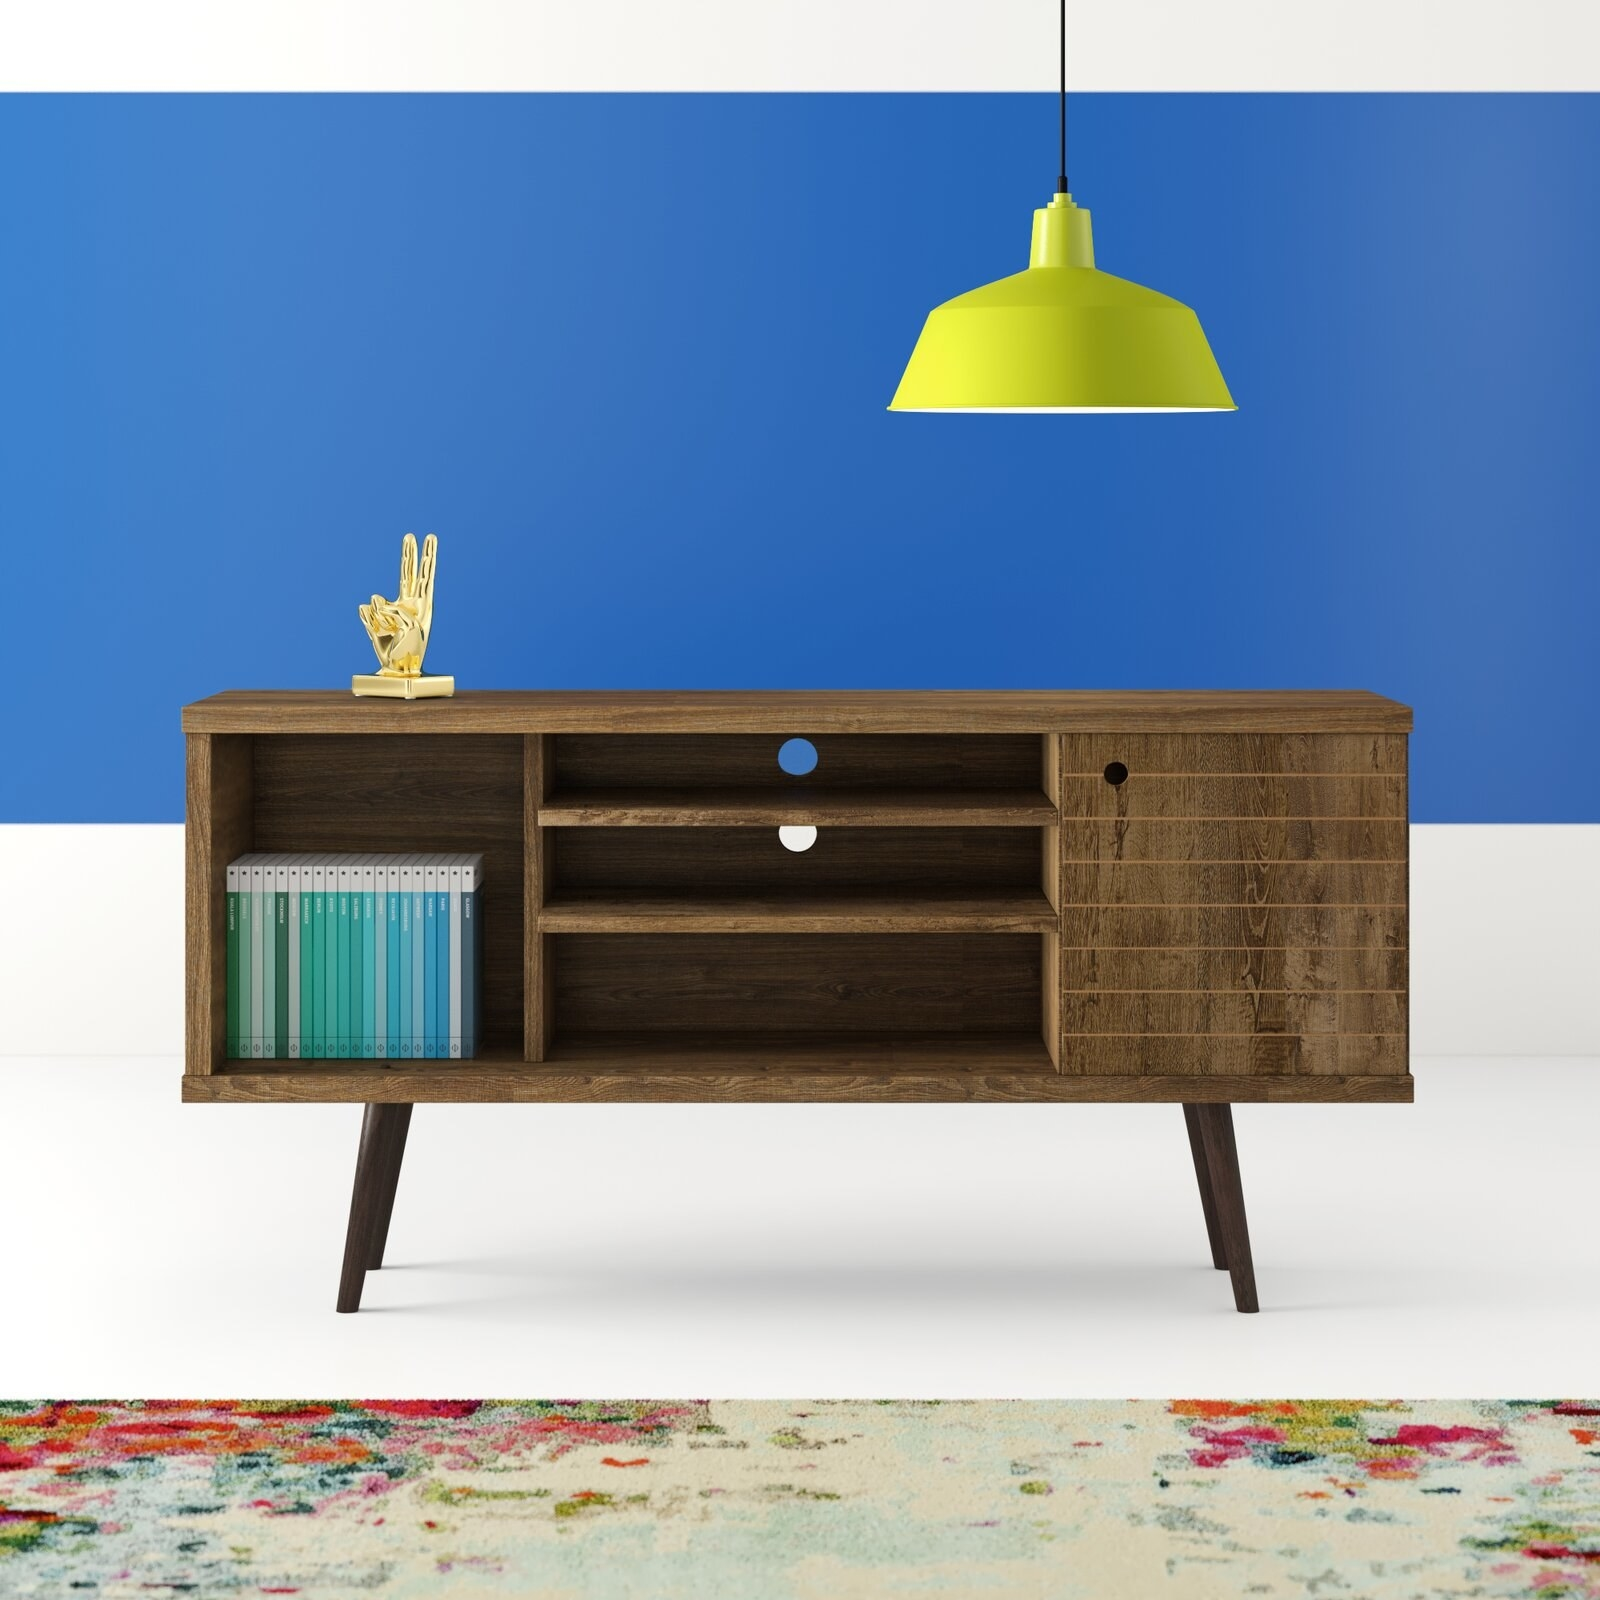 The TV stand, which has one large open cabinet at one end, one large closed cabinet at the other, and a central area with three open shelves